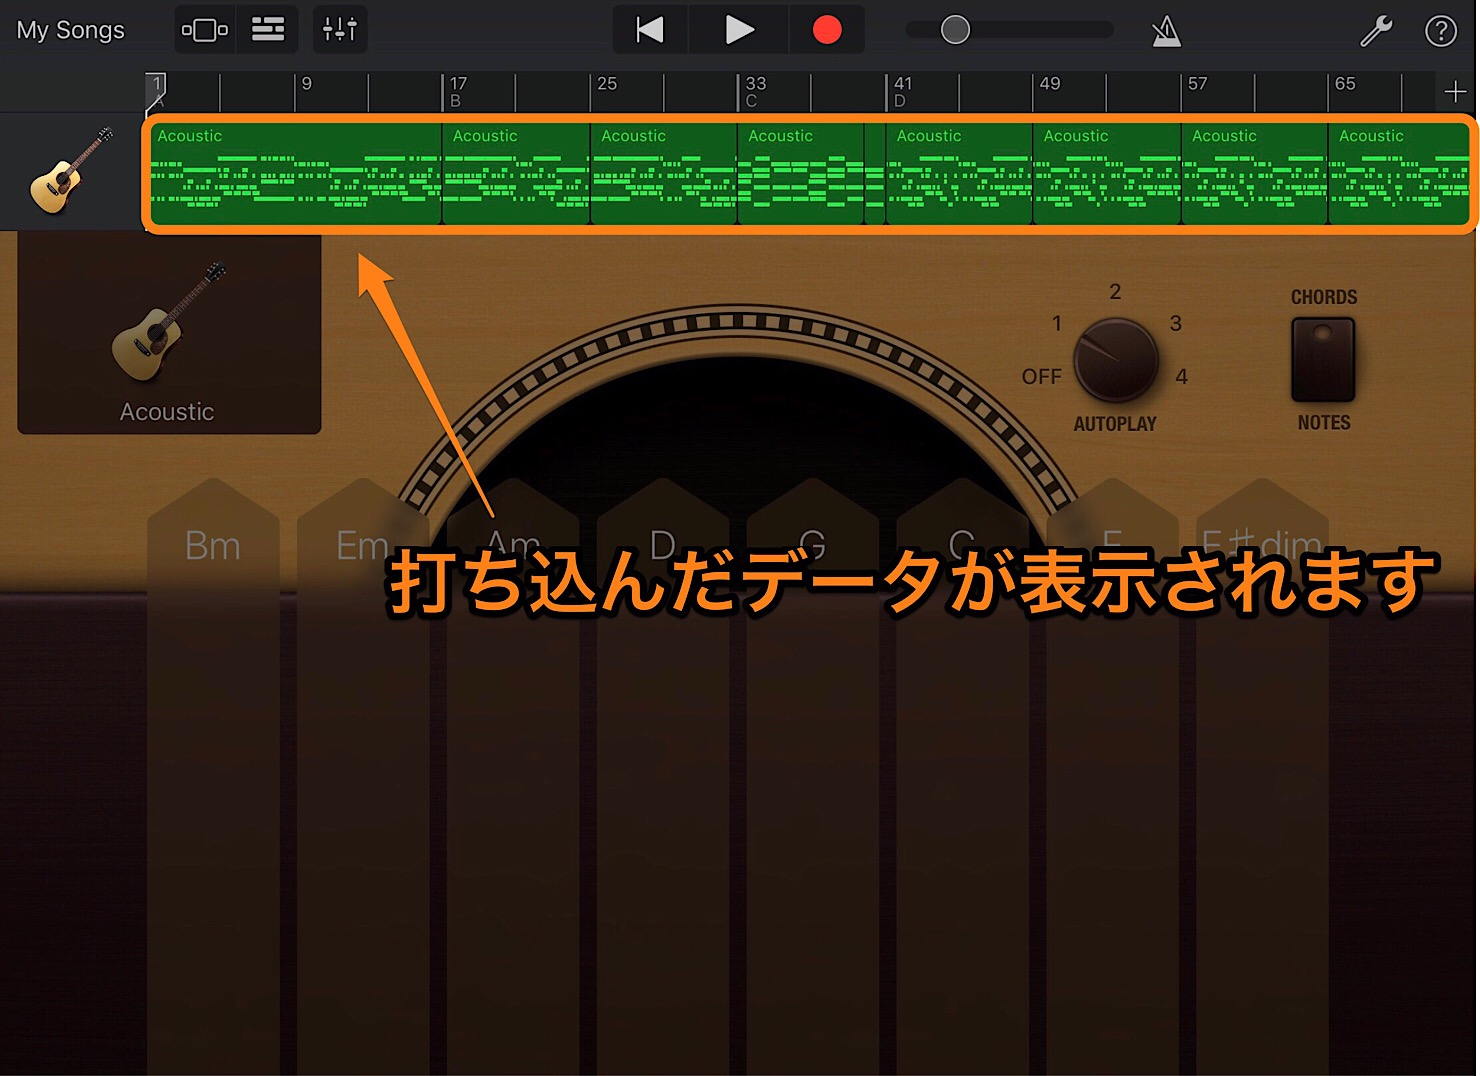 garageband-ios-ver2-edit-sound-2